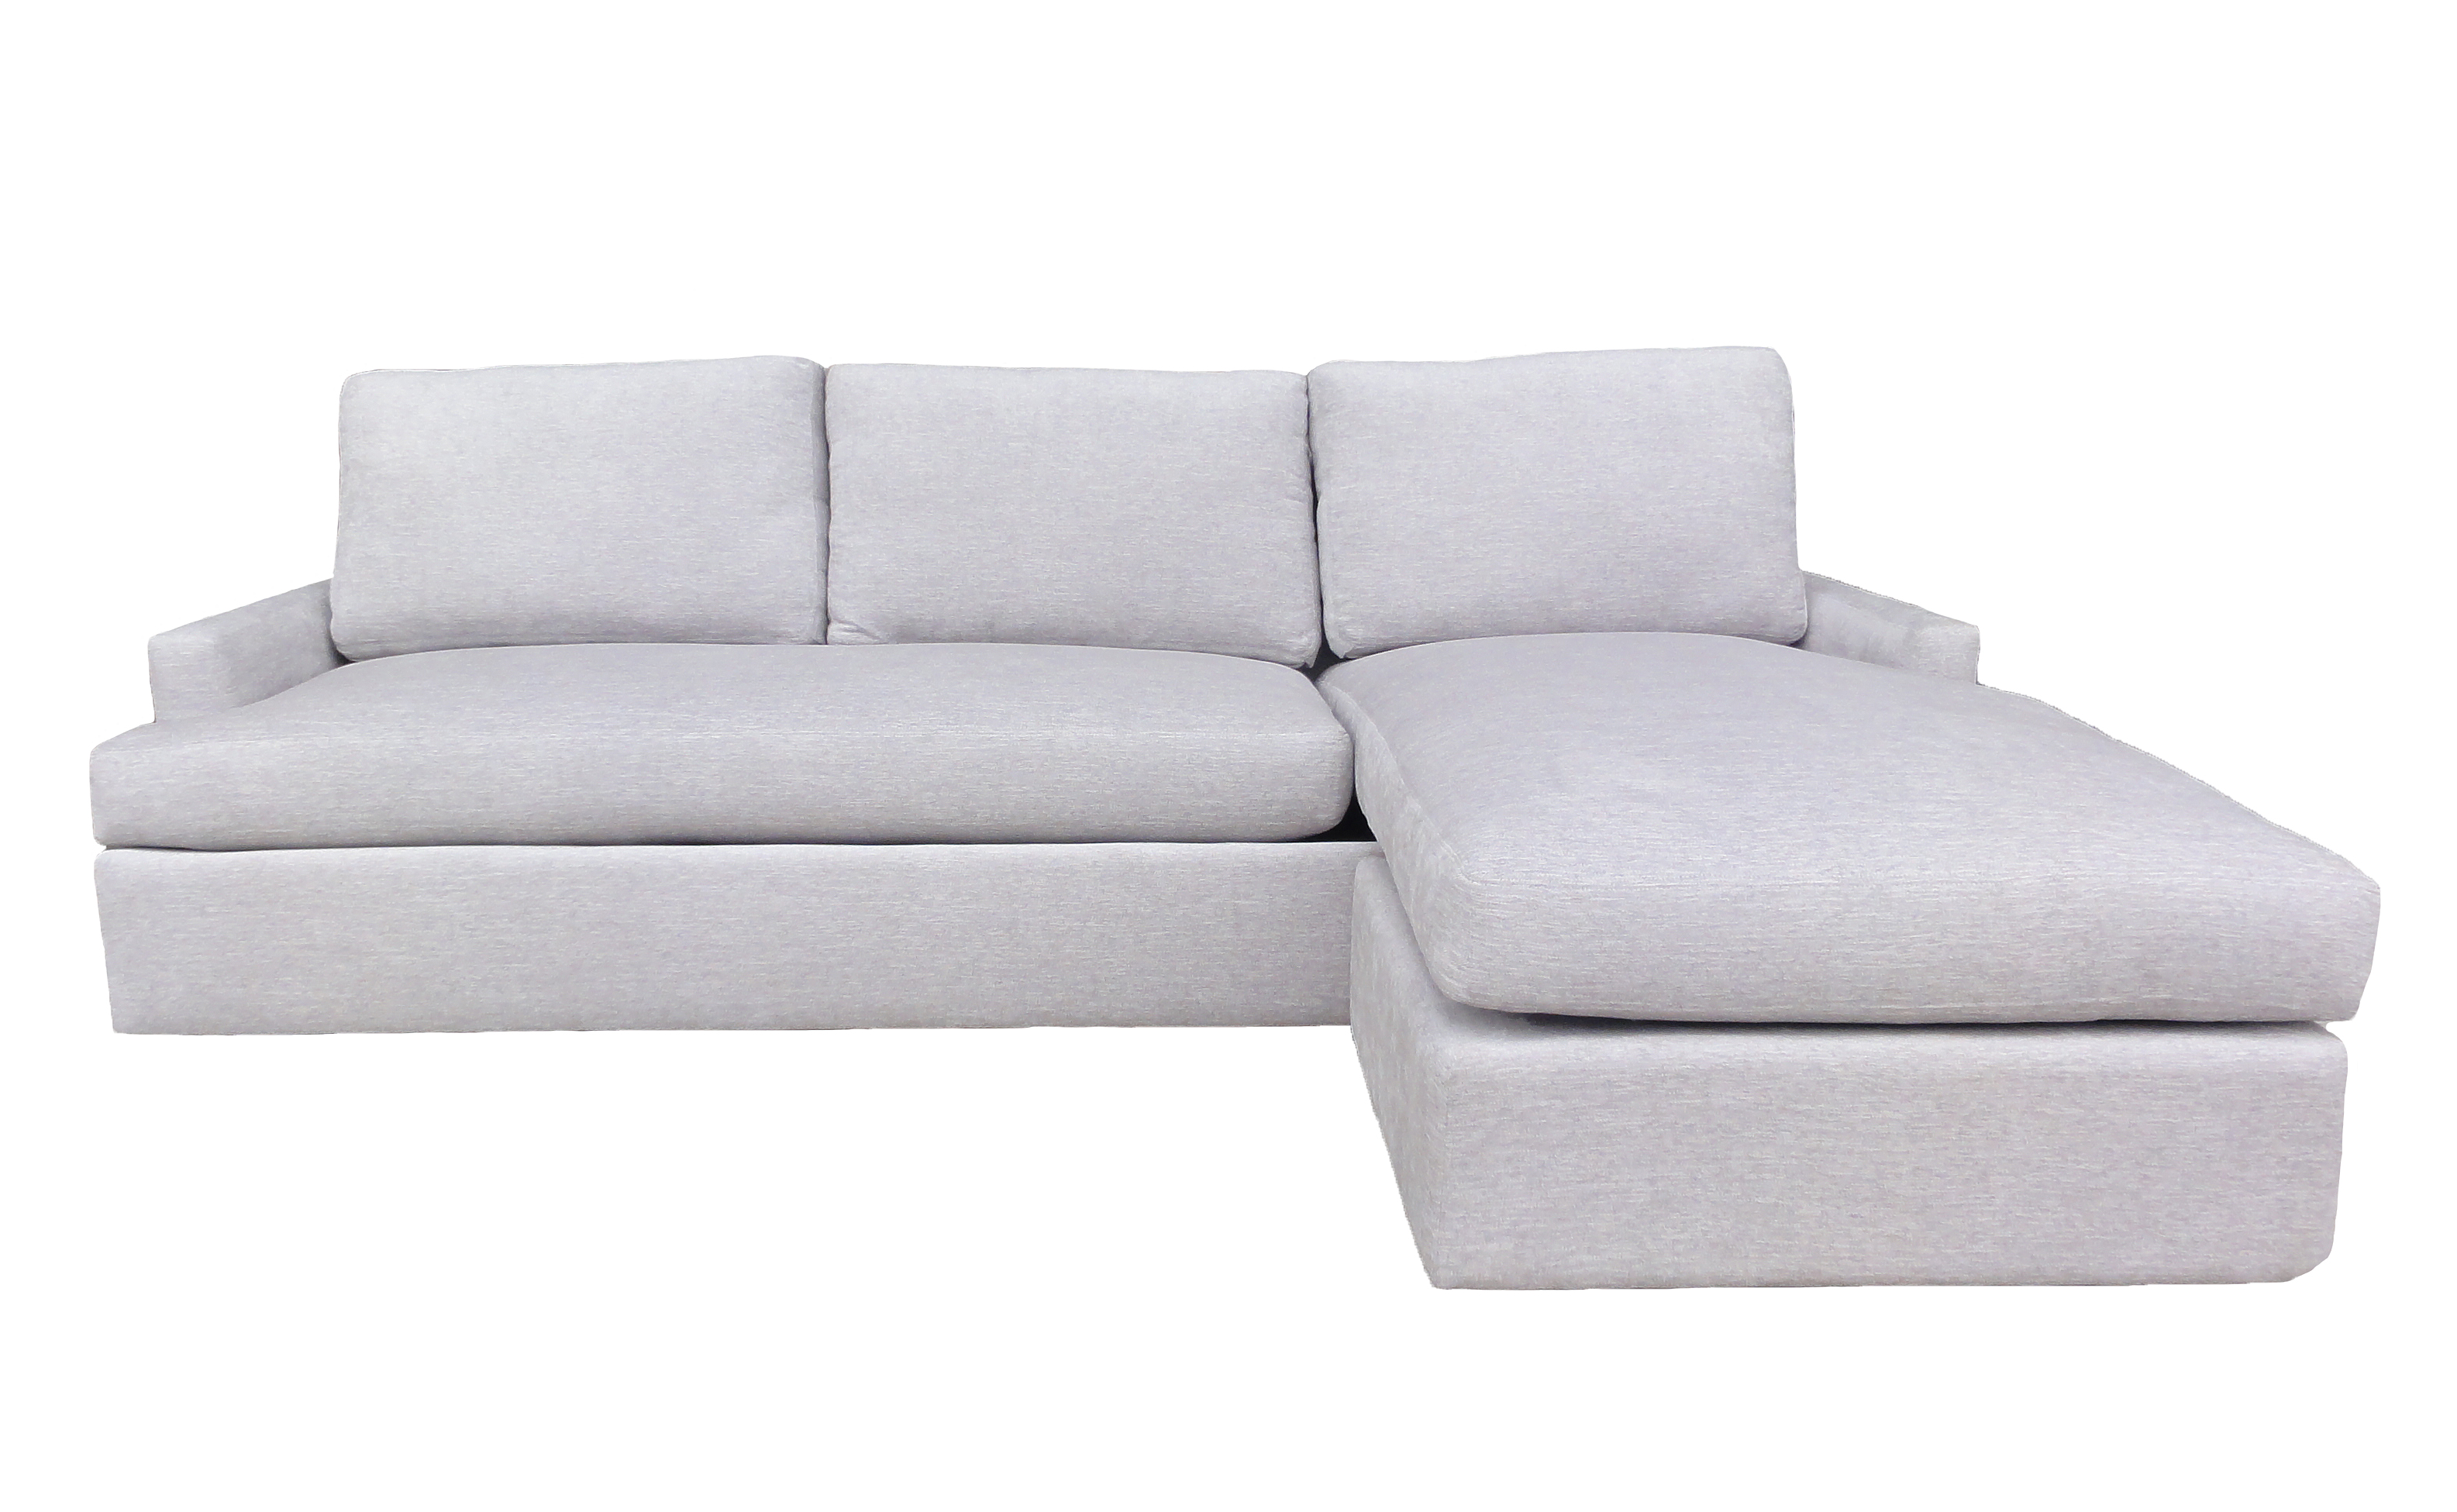 Malibu T Sectional W/ Reversible Chaise SANTA BARBARA DESIGN CENTER 33278-3